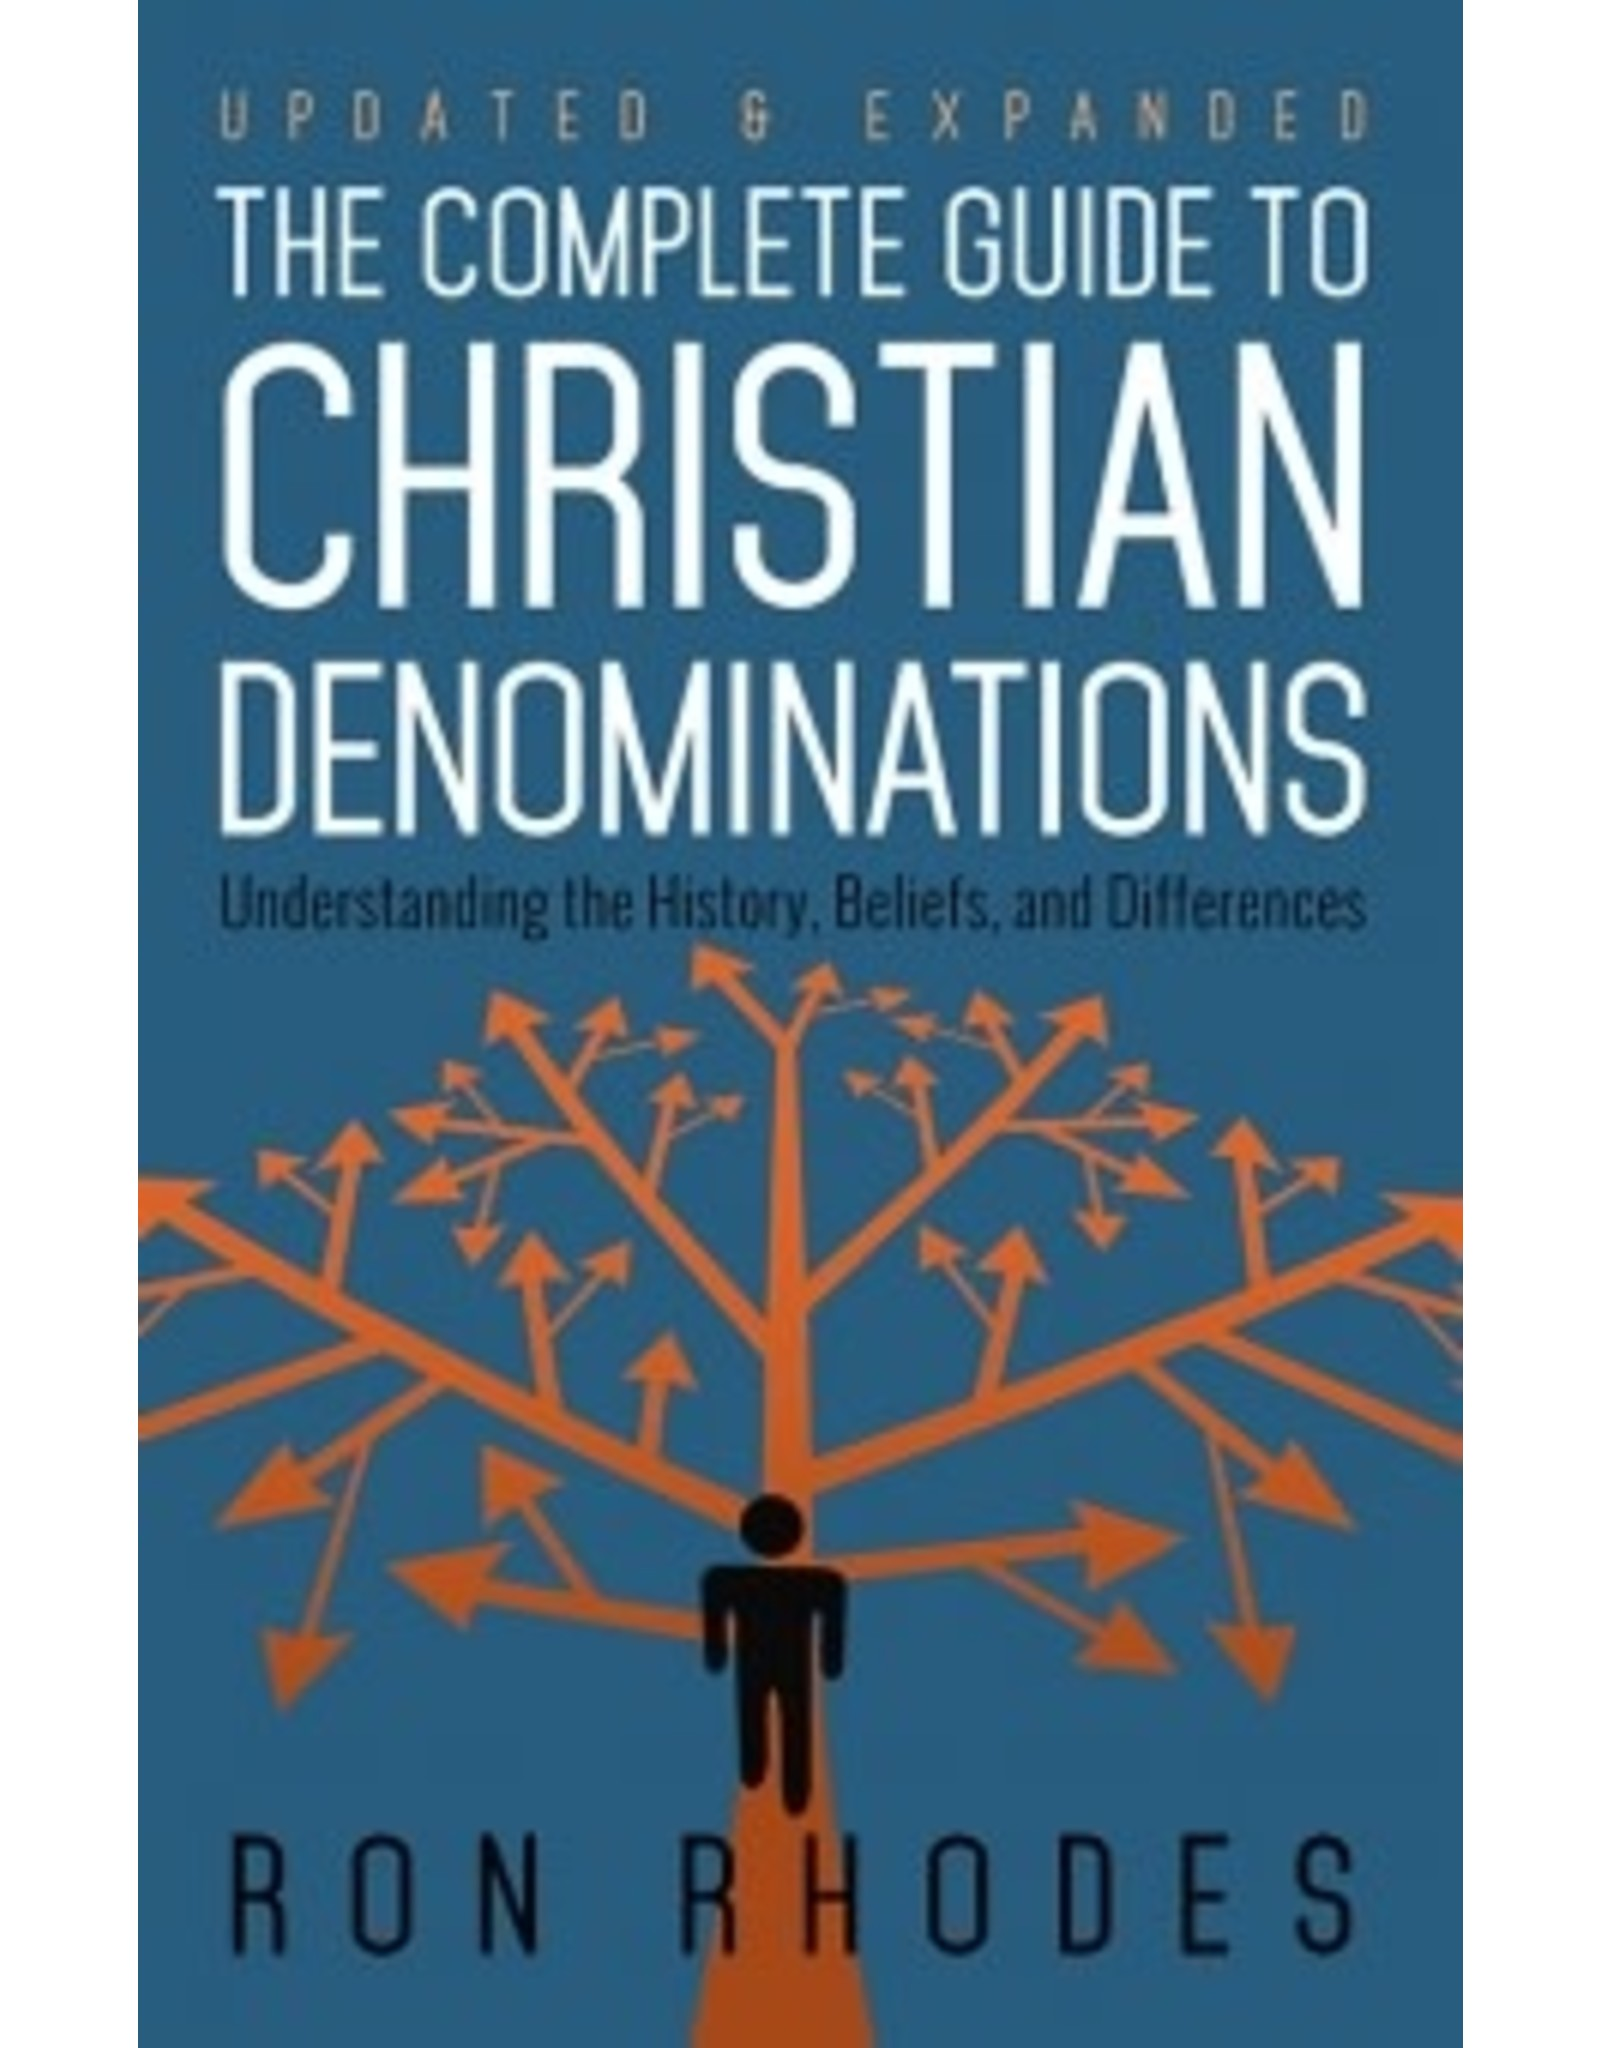 Rhodes The Complete Guide to Christian Denominations